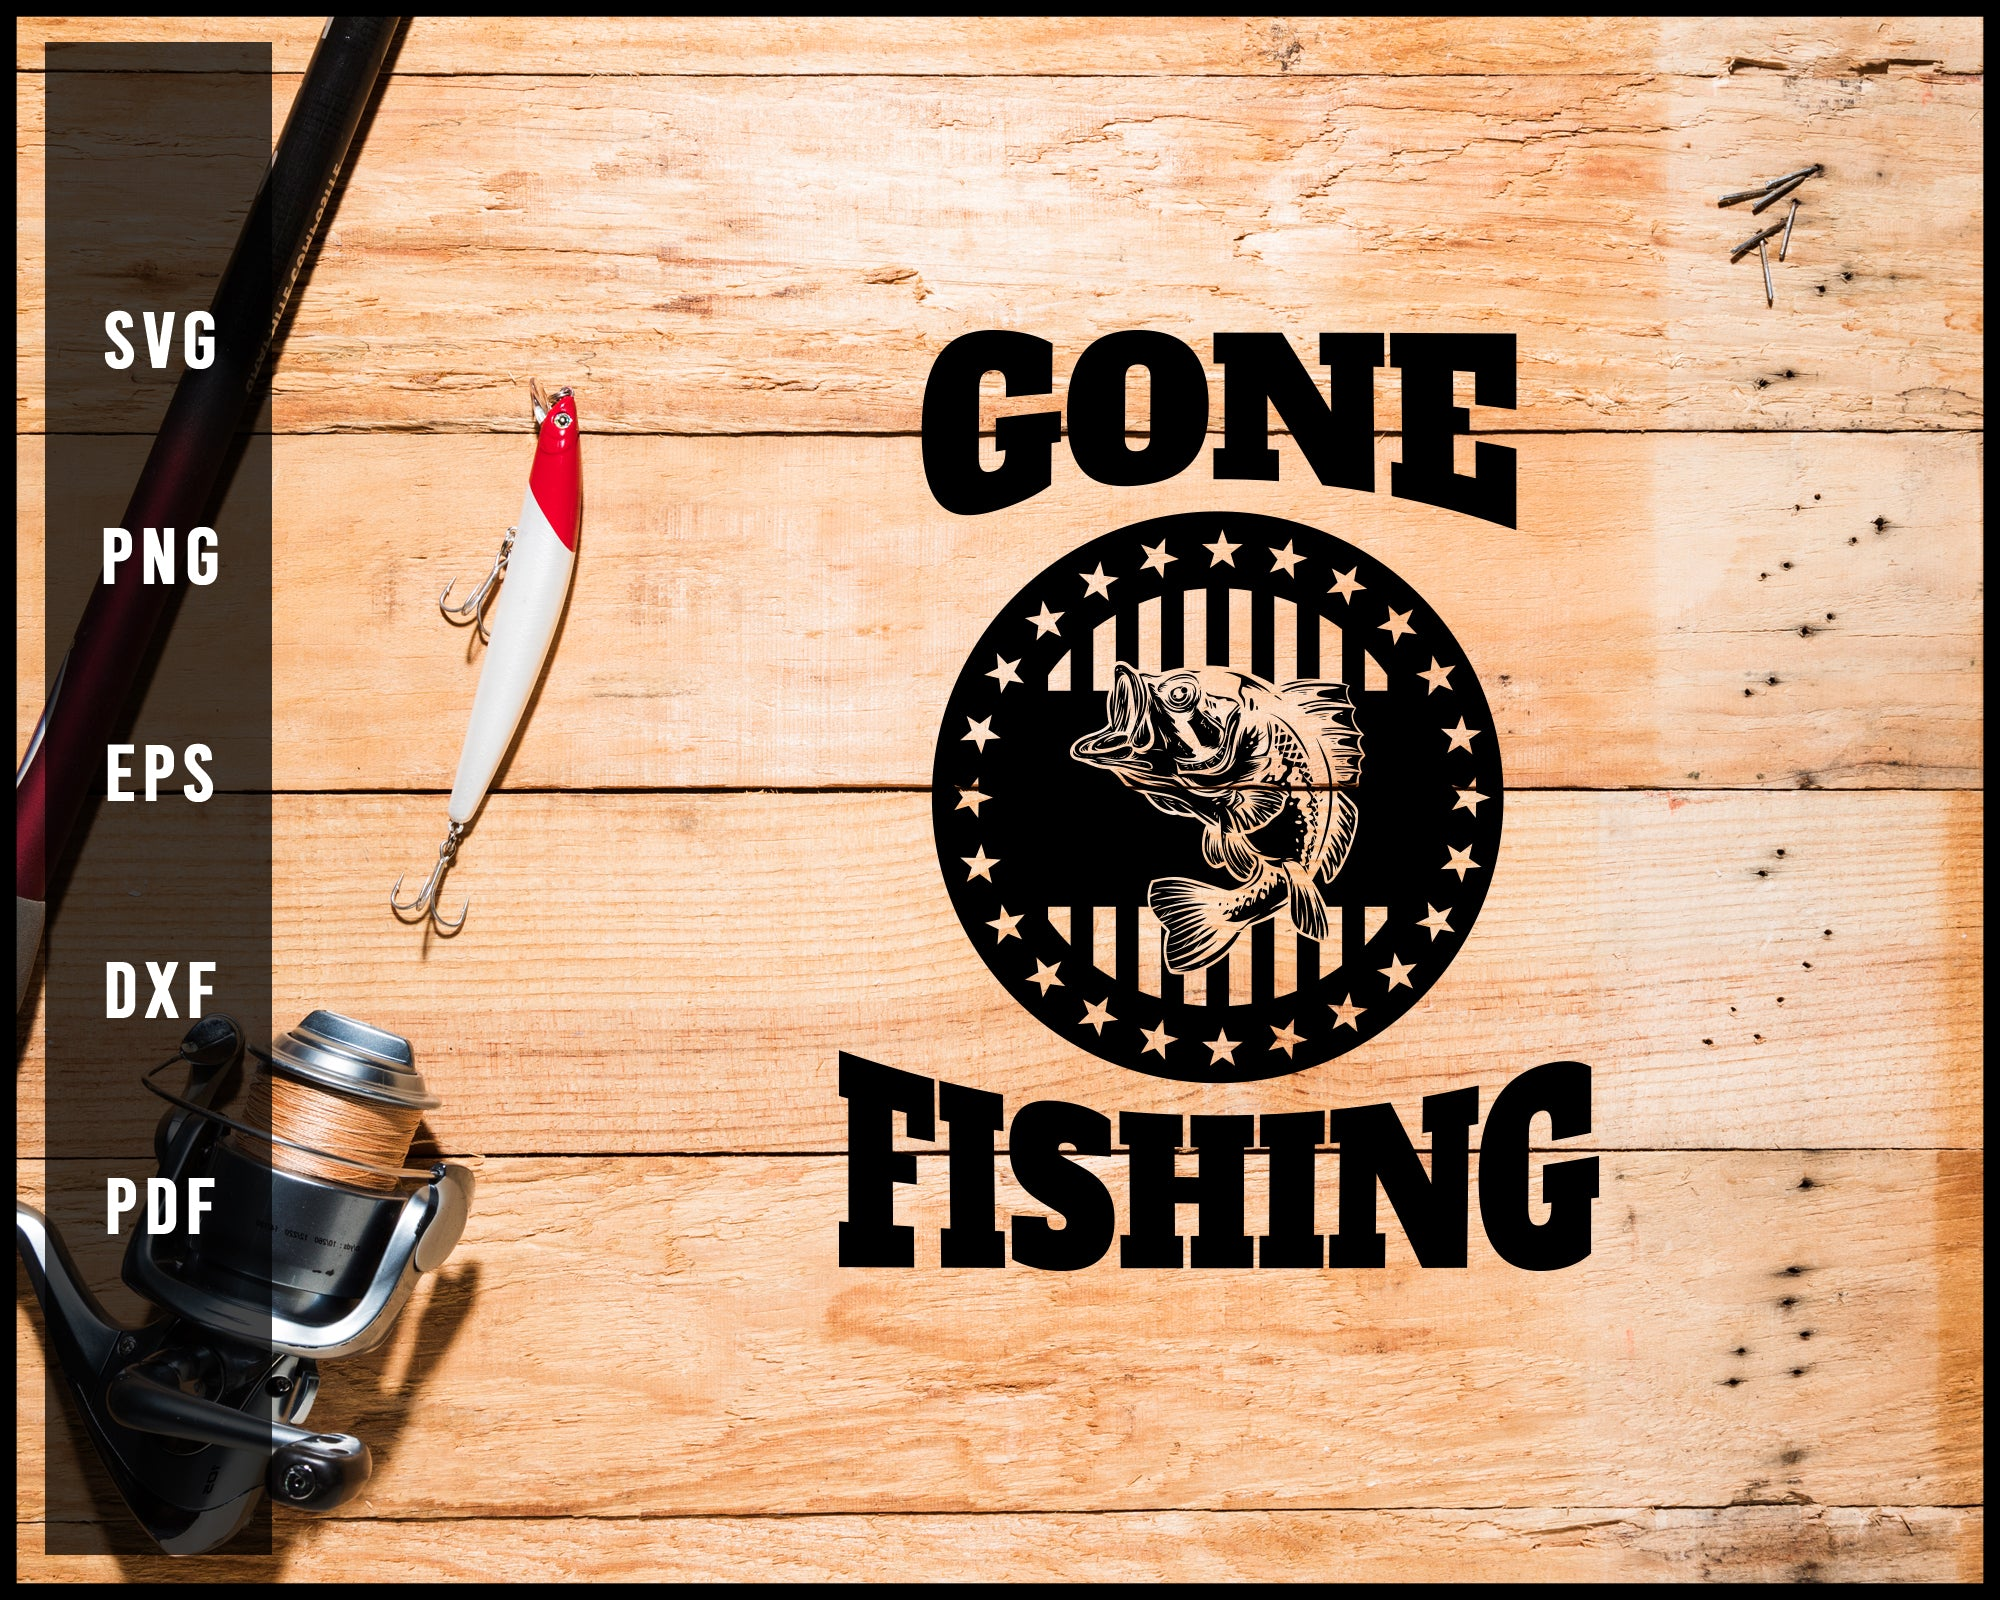 Gone Fishing svg png Silhouette Designs For Cricut And Printable Files